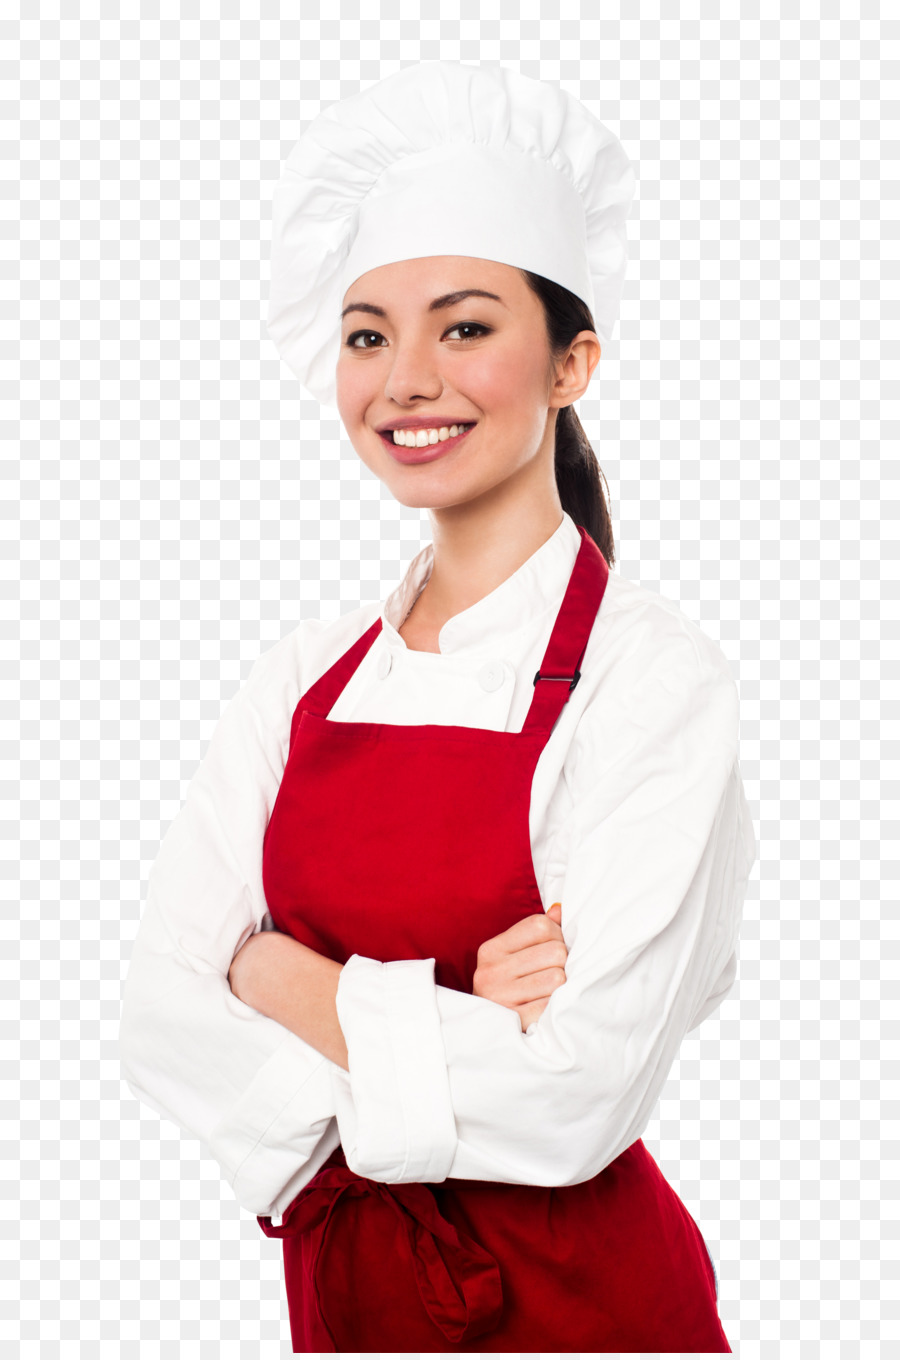 Polish cuisine Asian cuisine Chef Woman - chef - Asian Chef PNG